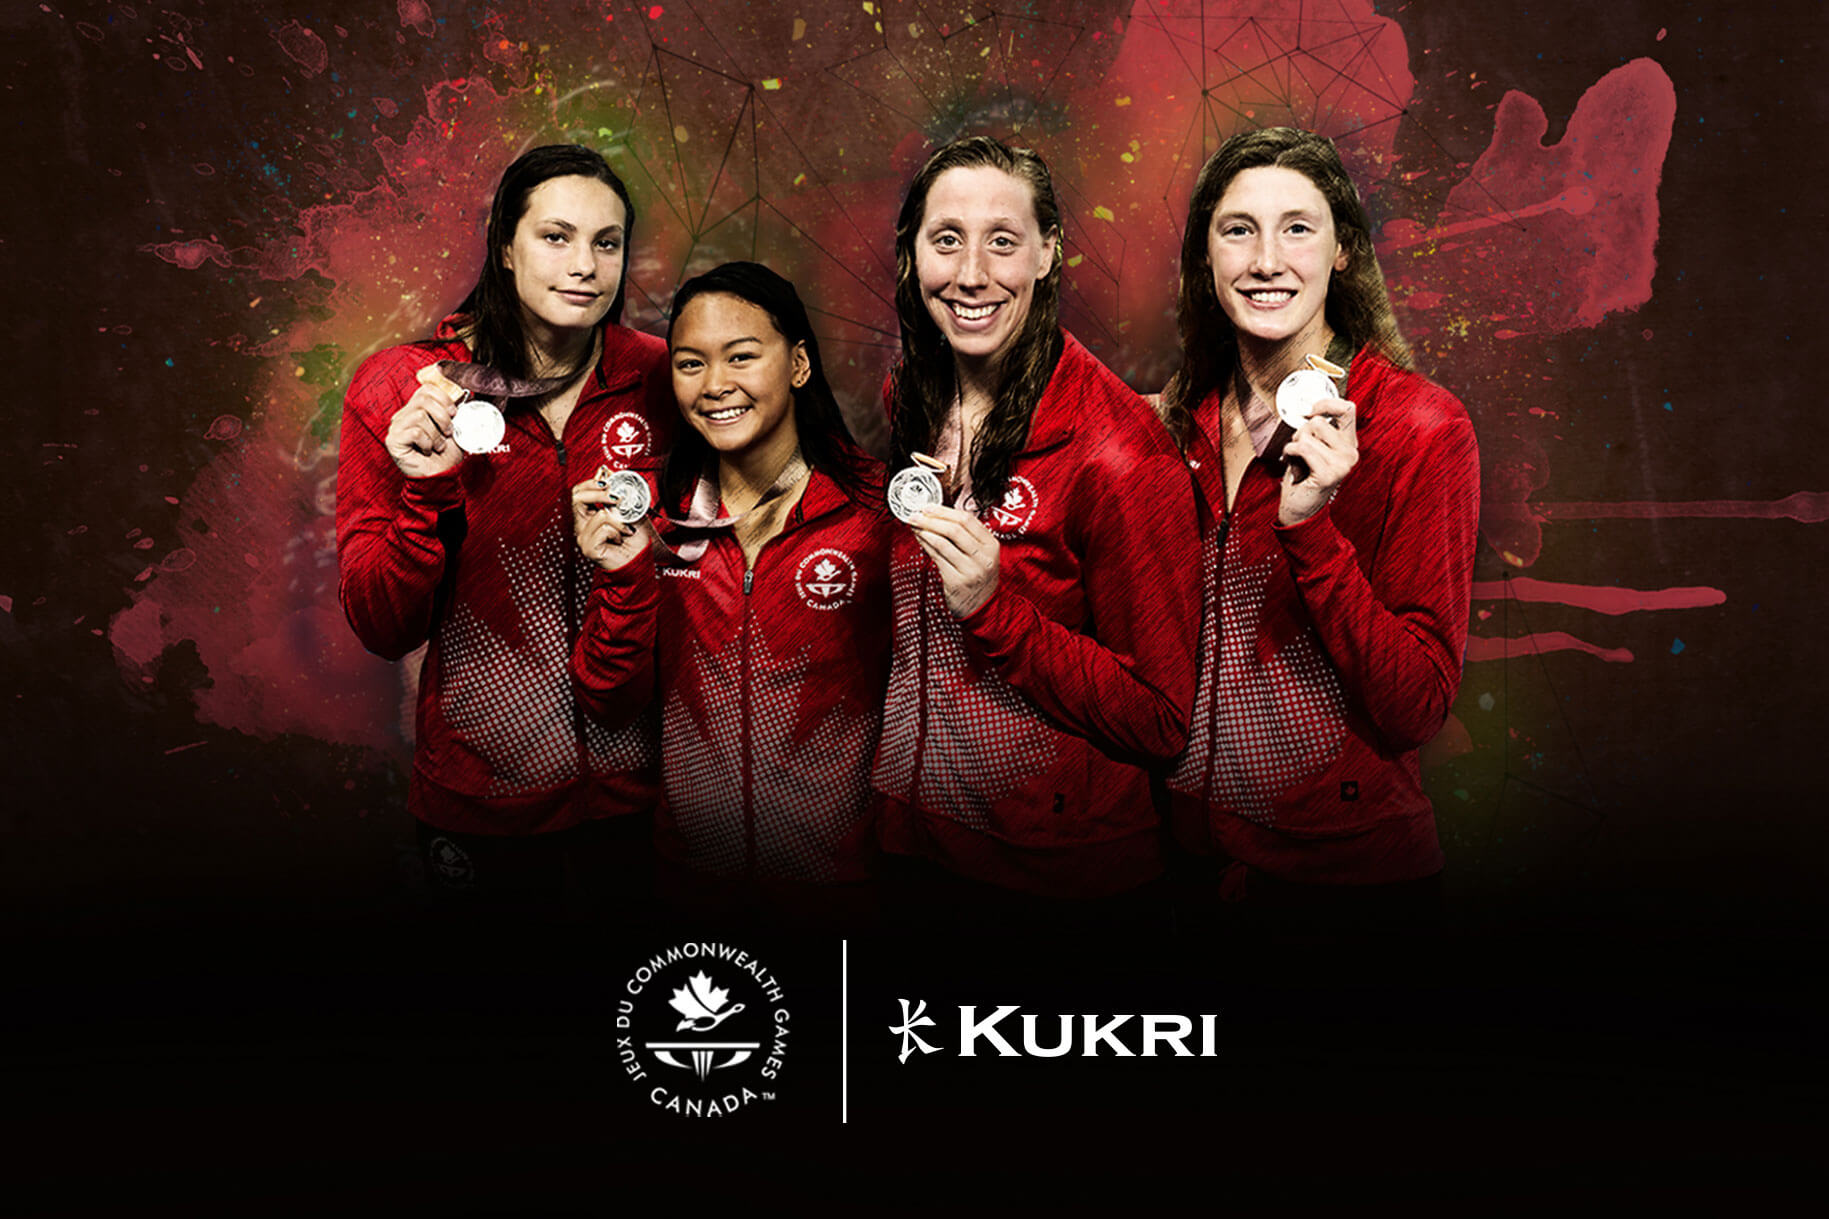 Kukri_Commonwealth-Games-Canada_Carousel-1829×1219